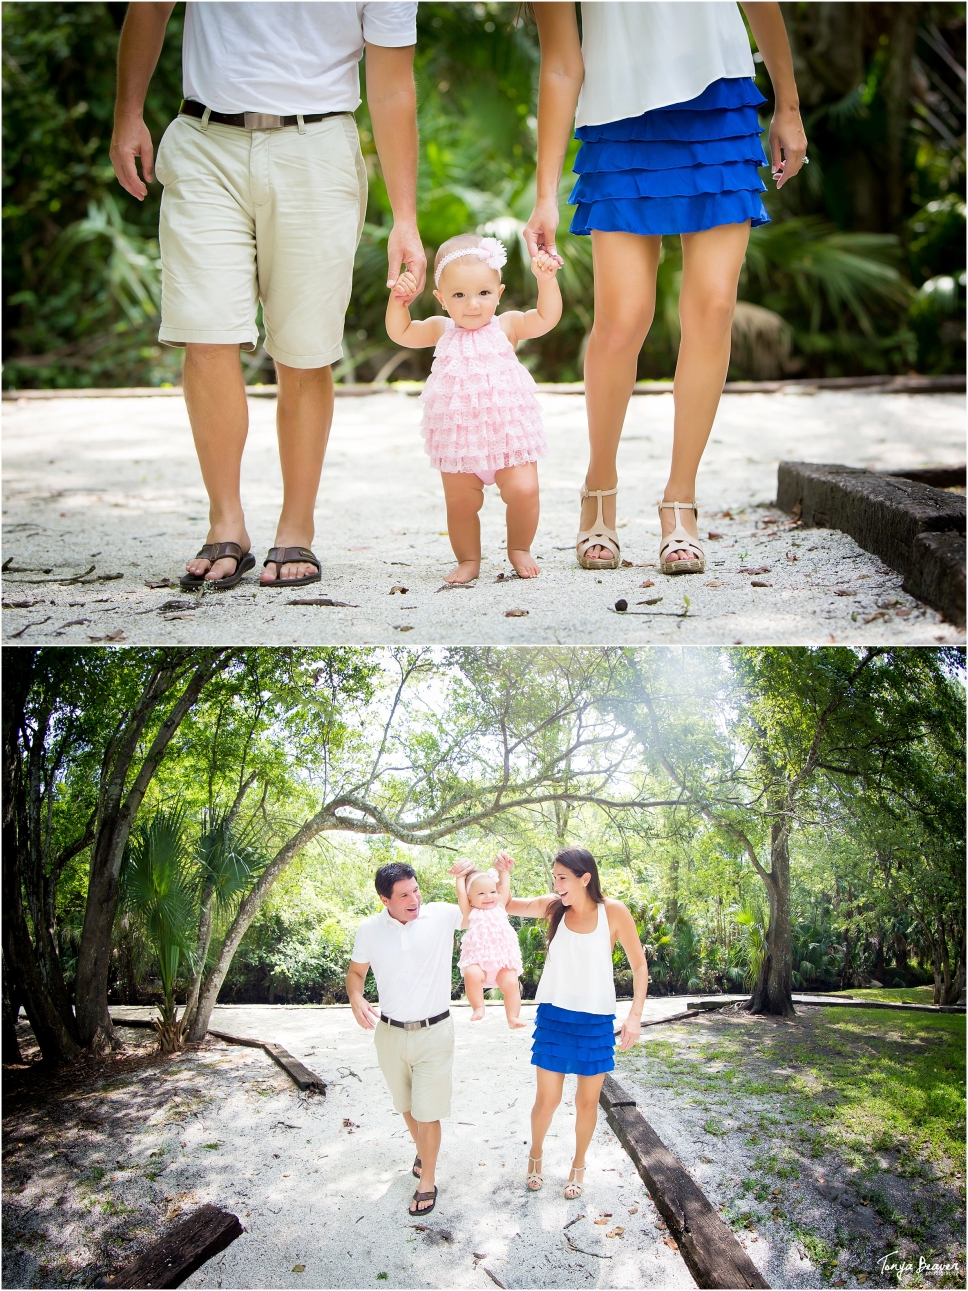 jacksonville family photographer, atlantic beach family photographer, jacksonville photography studio, one year photos, howell park family photos, tonya beaver photography003